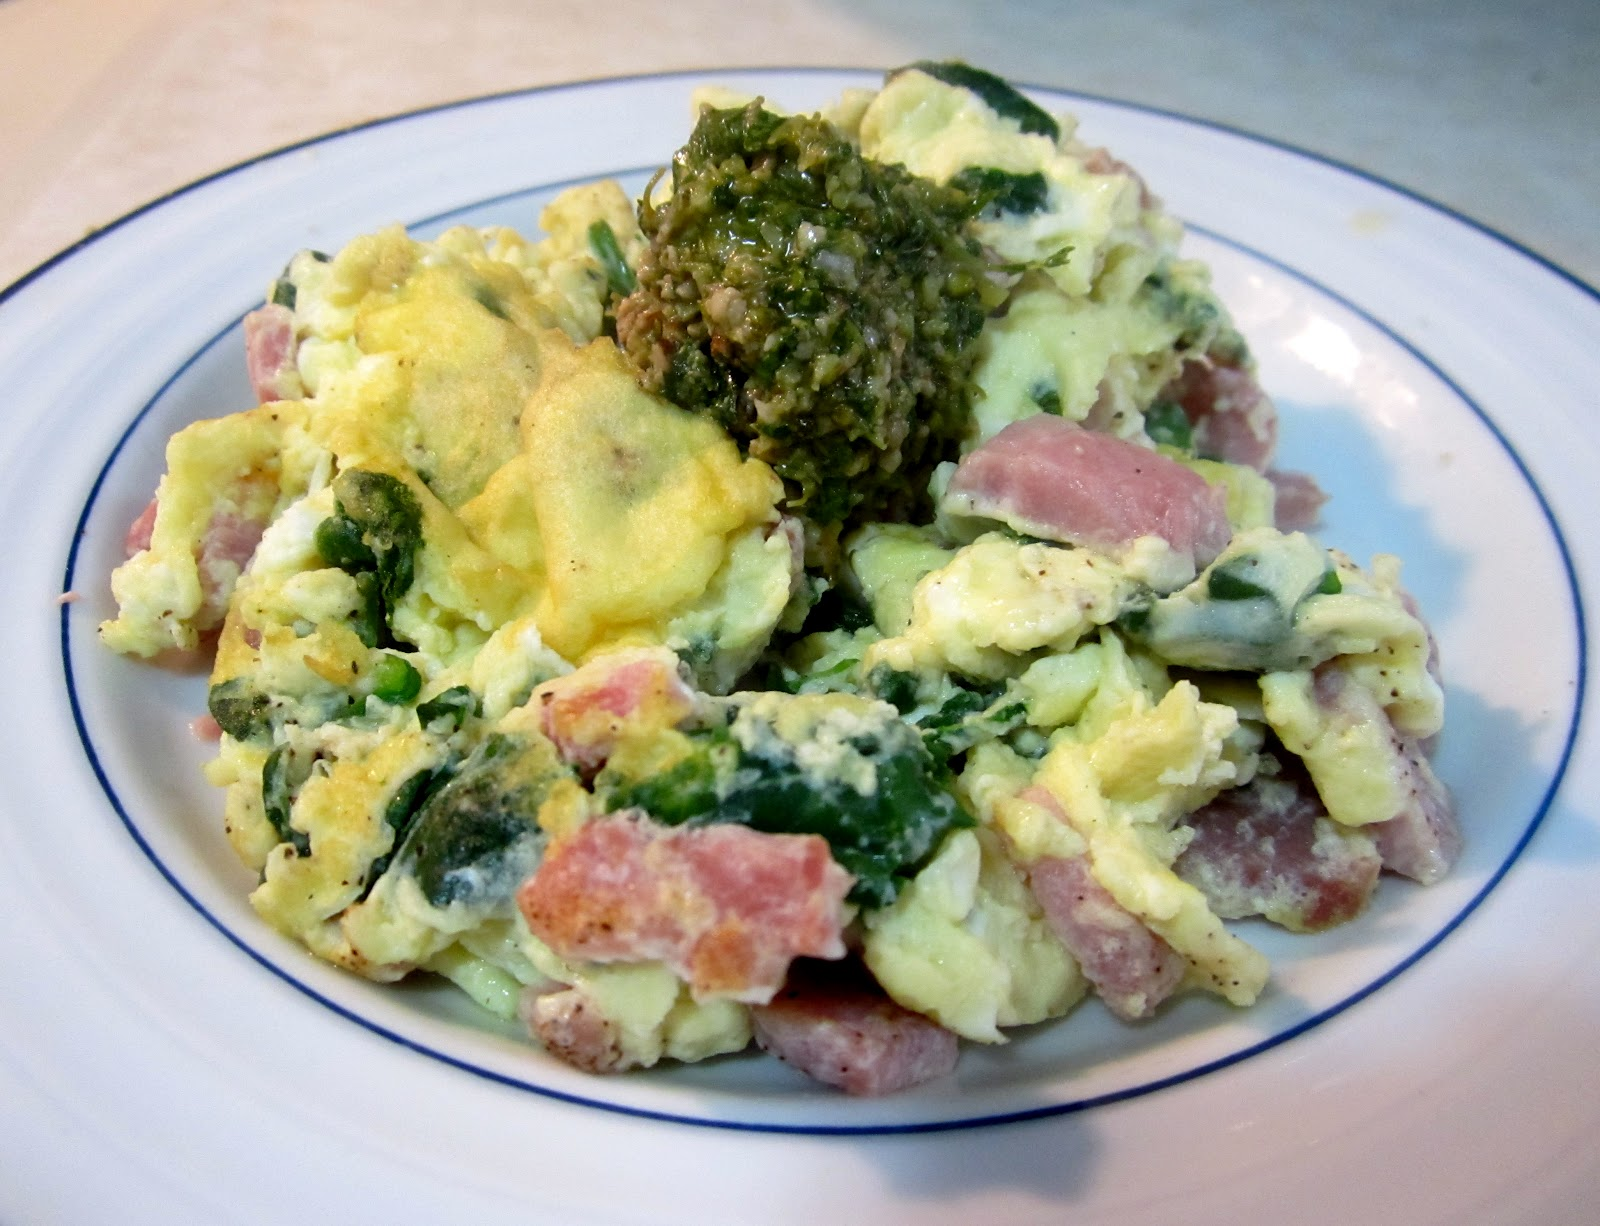 Green eggs and Ham: